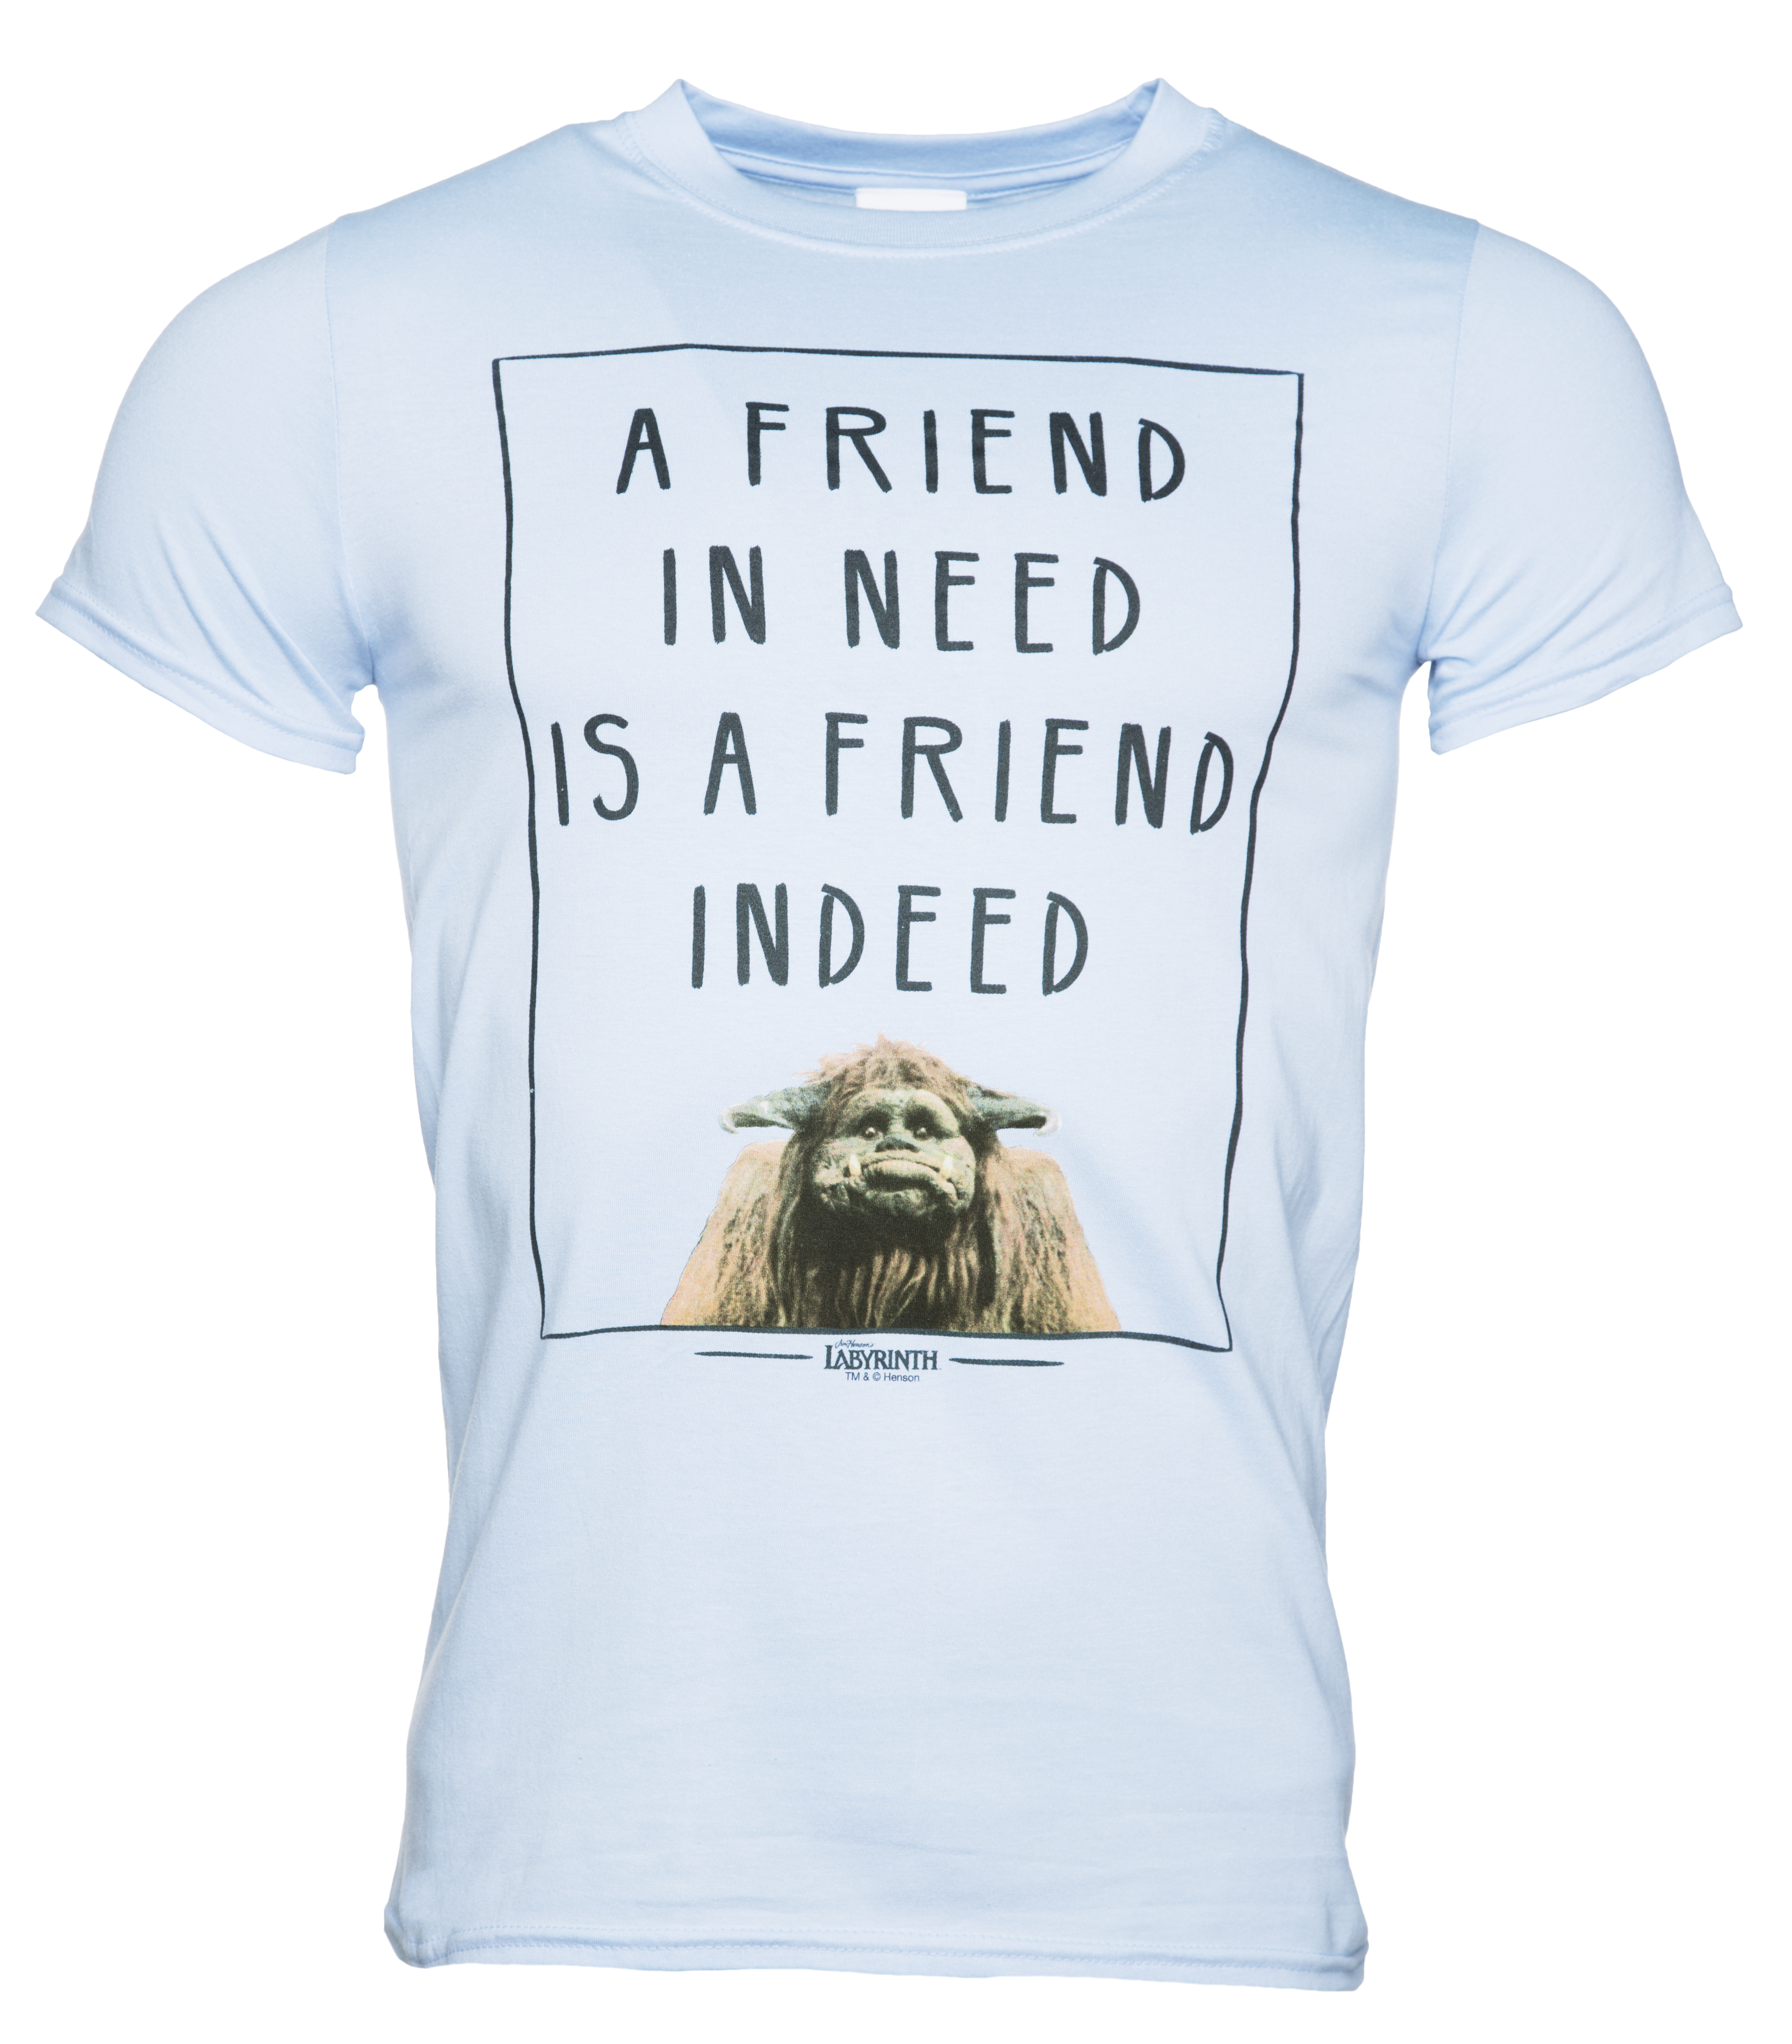 Design your own hello kitty t-shirt - Men S Ludo A Friend In Need Labyrinth T Shirt